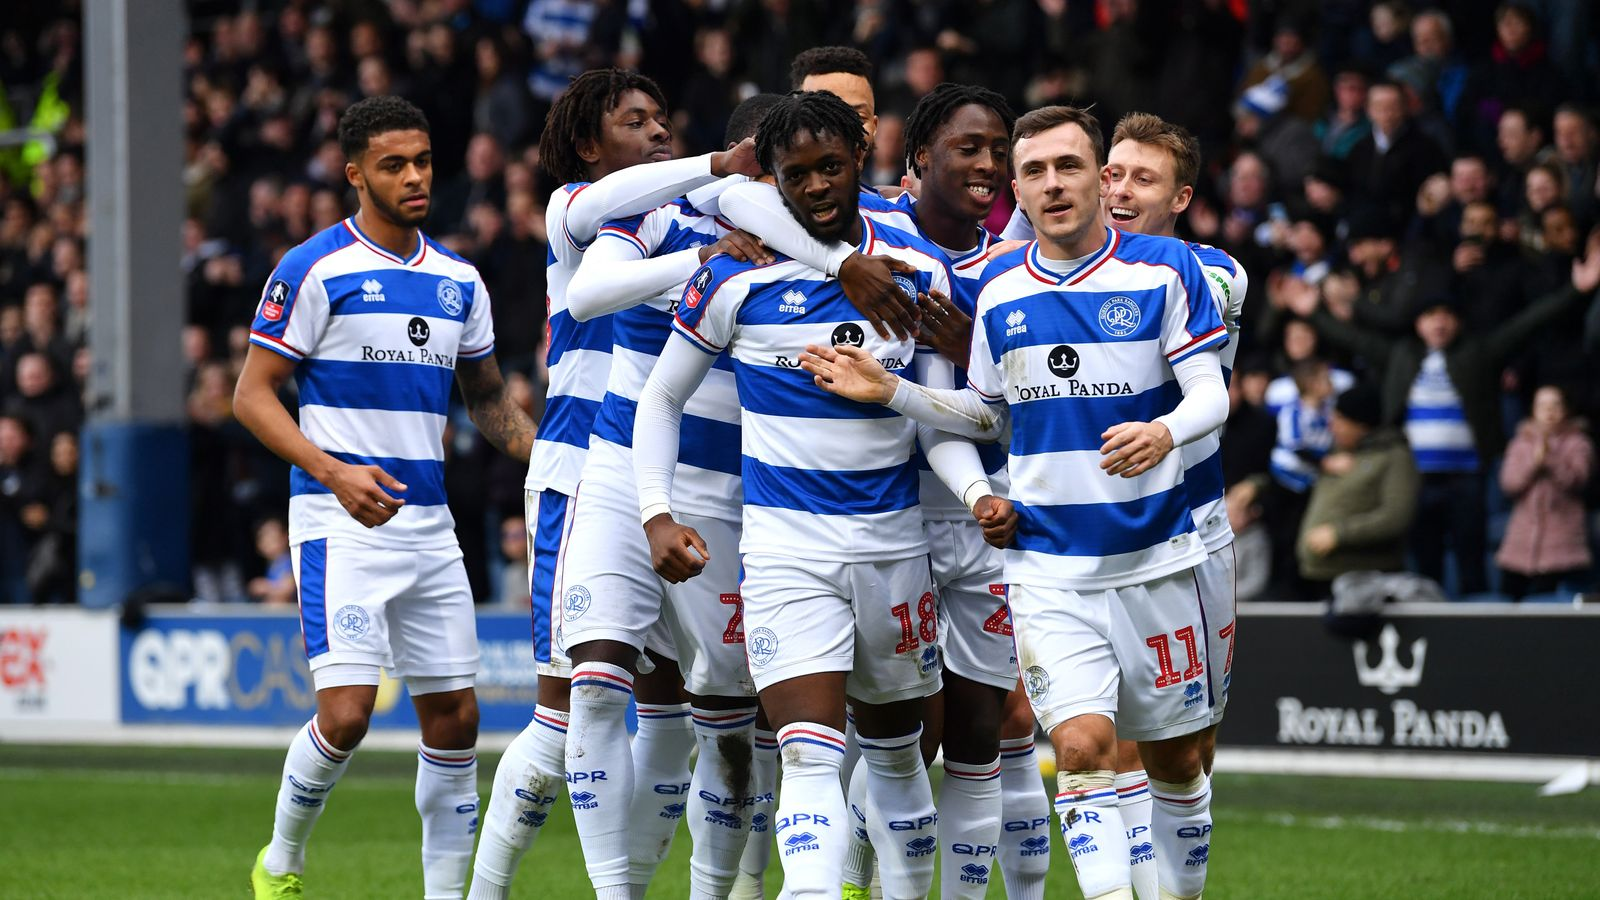 Qpr Result Today